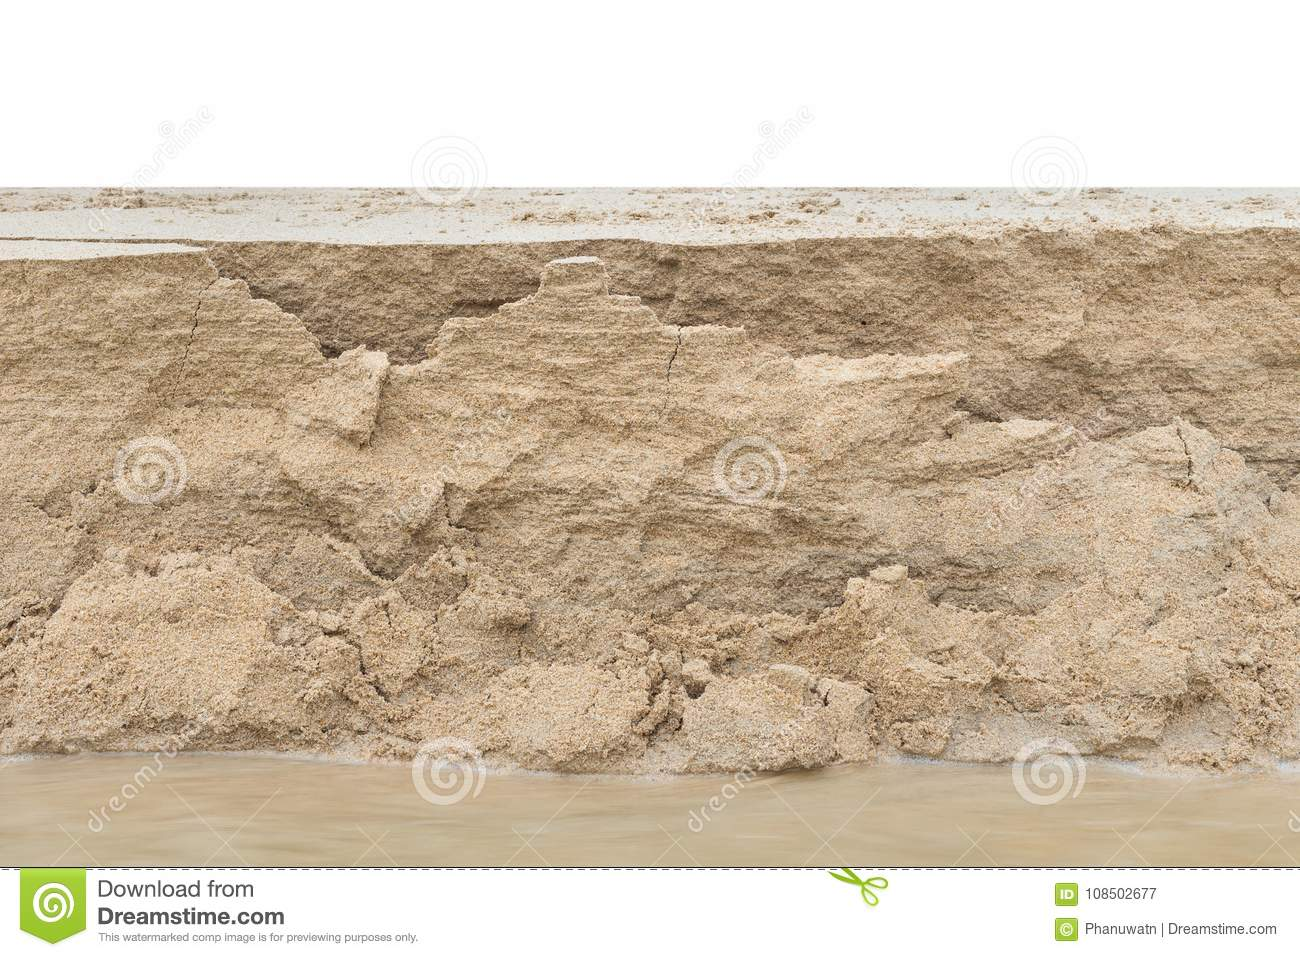 Layer of sand from sand erosion on the beach. Isolated on white